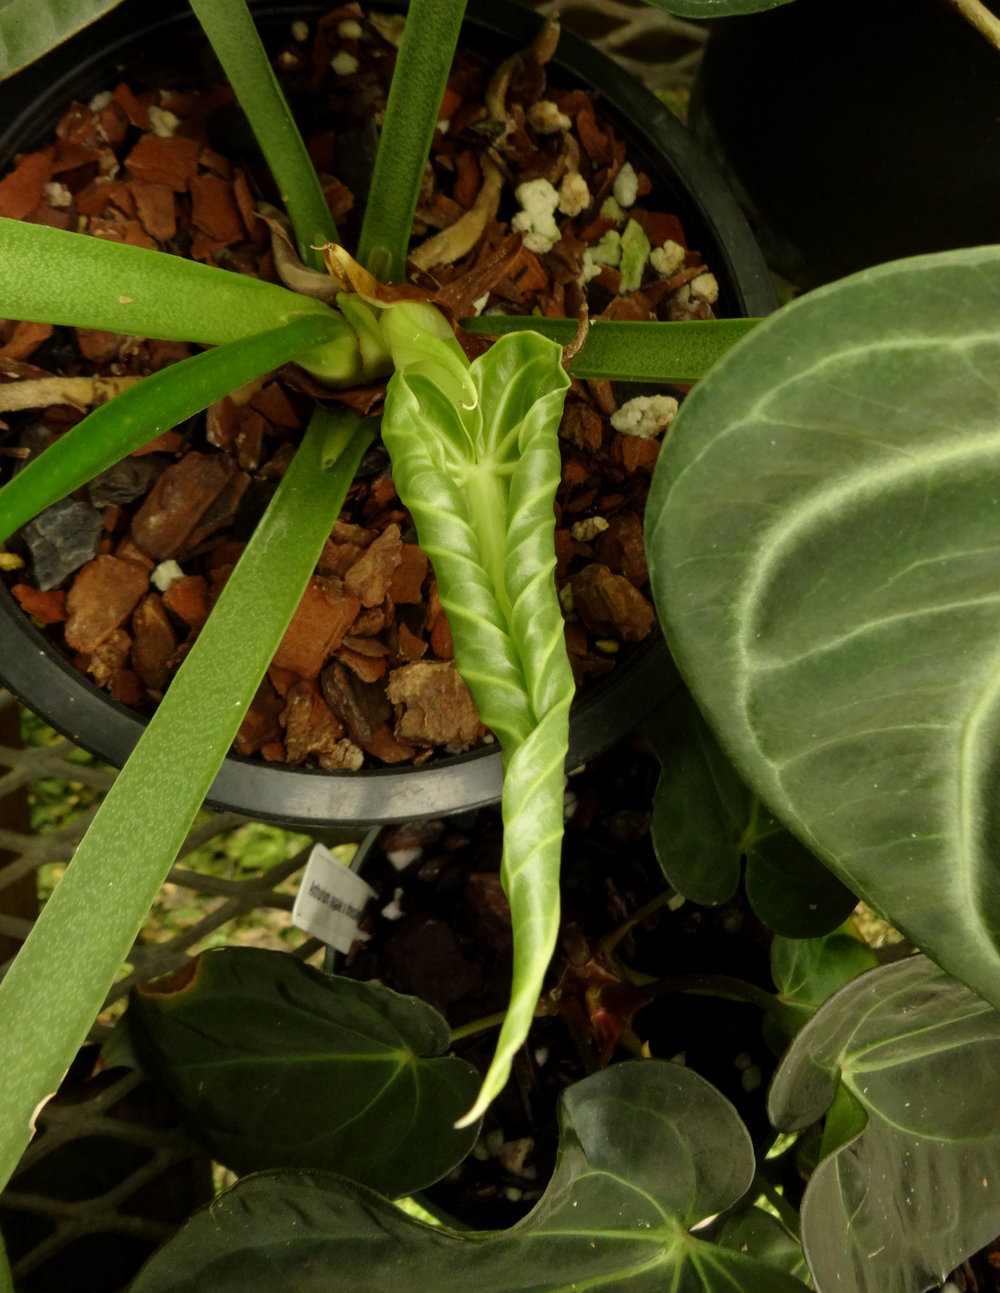 Anthurium villenaorum  (sp. ined.) unfolding a new leaf in California. Note involute vernation on this leaf.